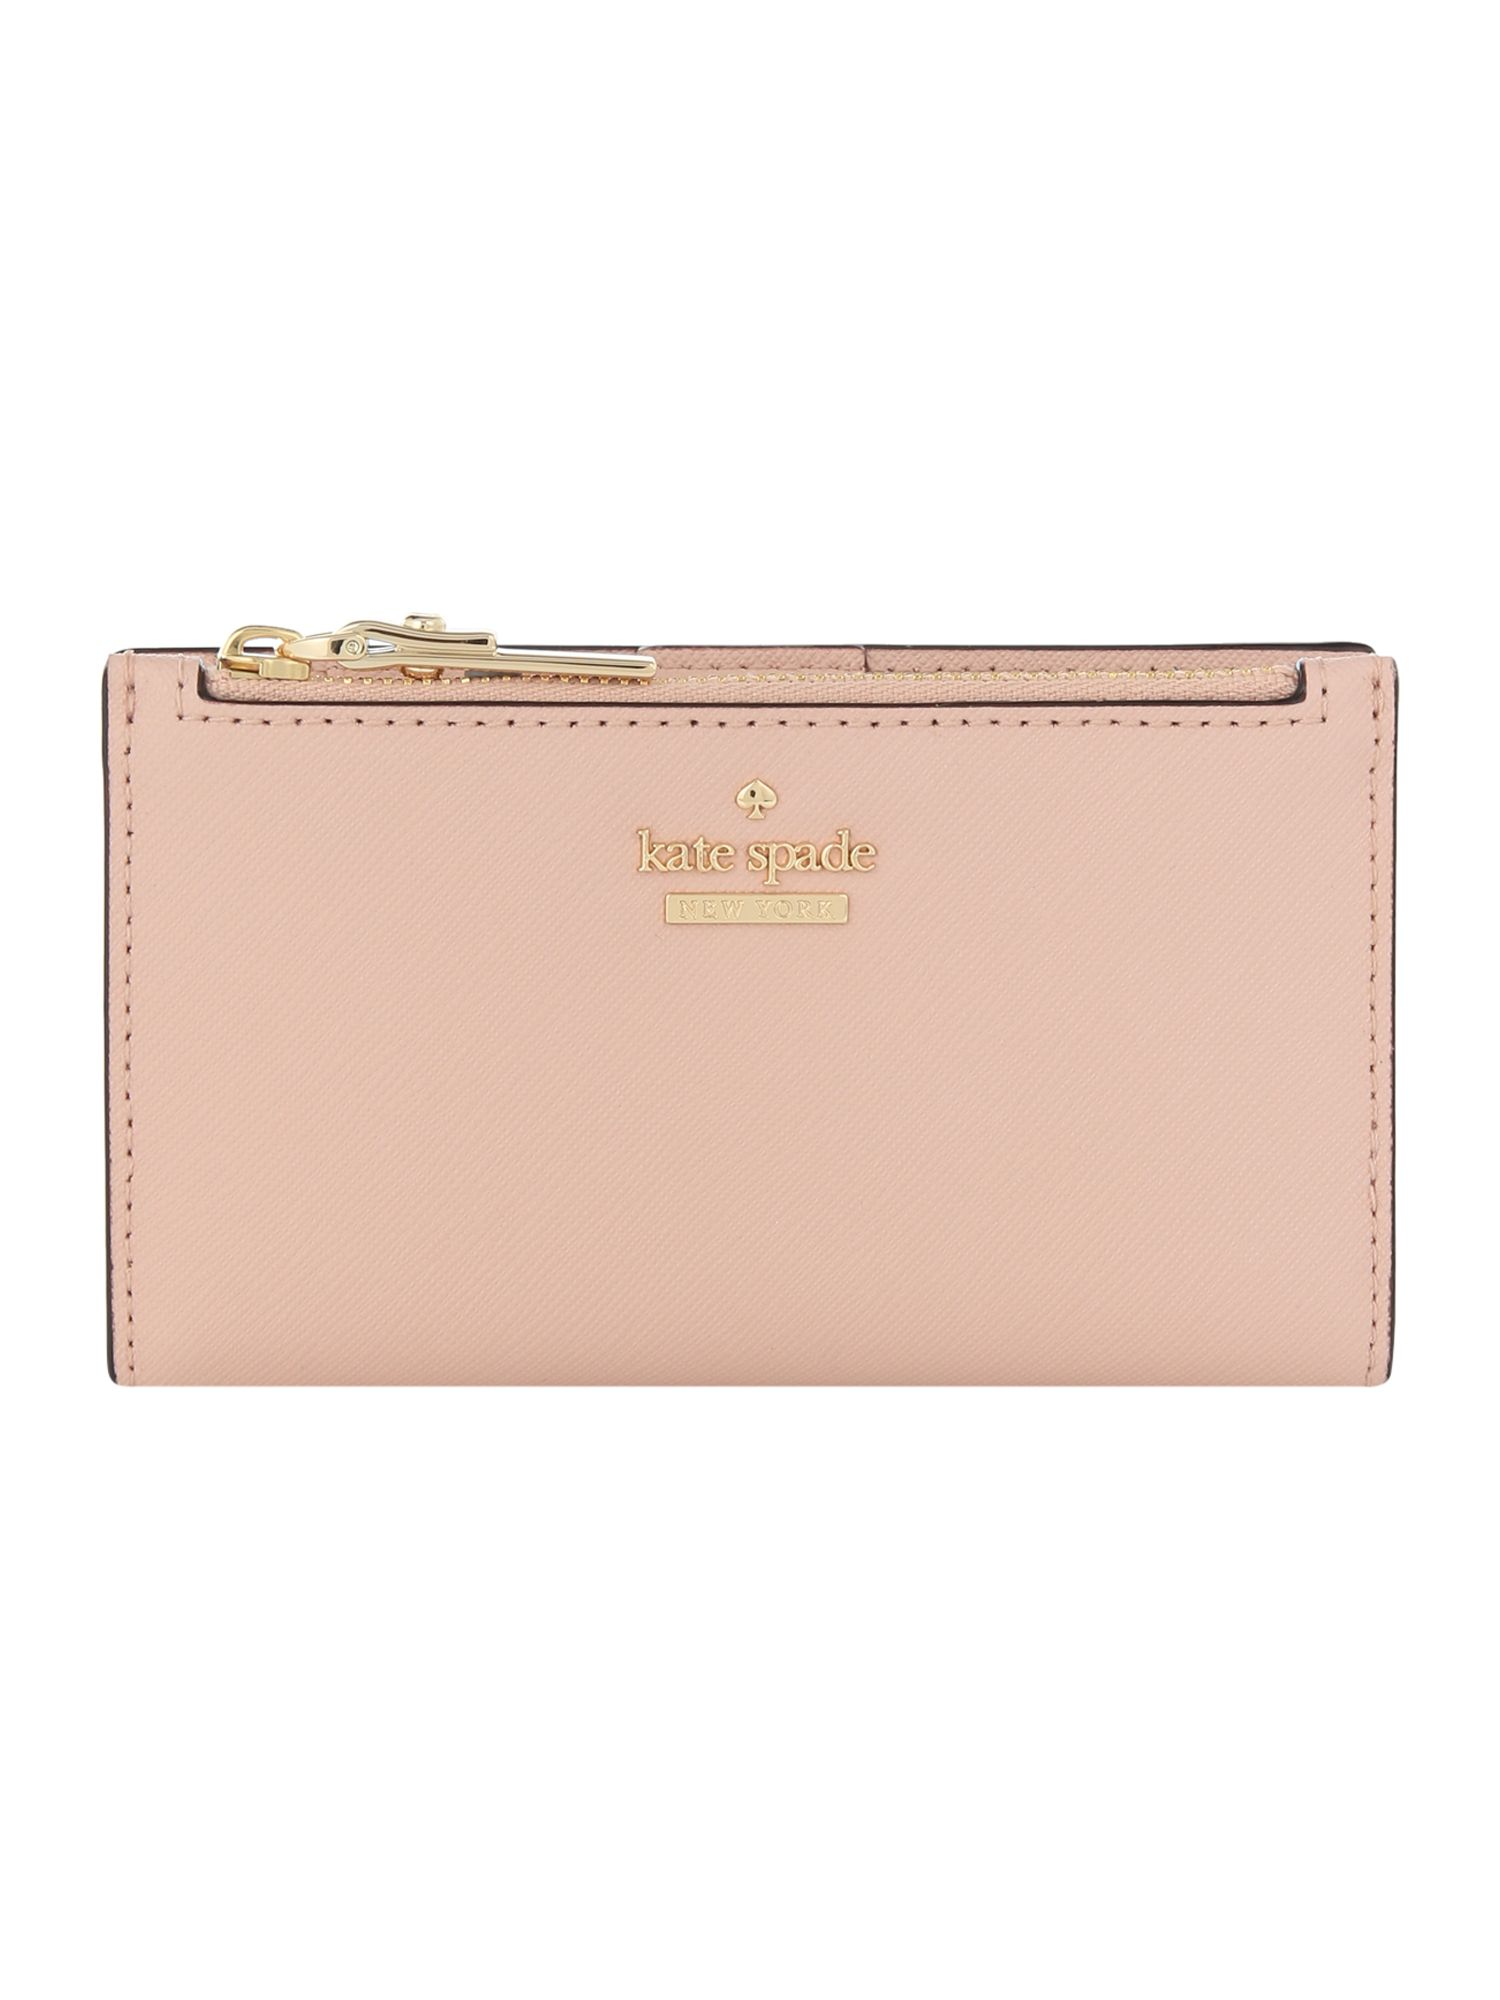 Kate Spade New York Cameron street mikey card case, Pink